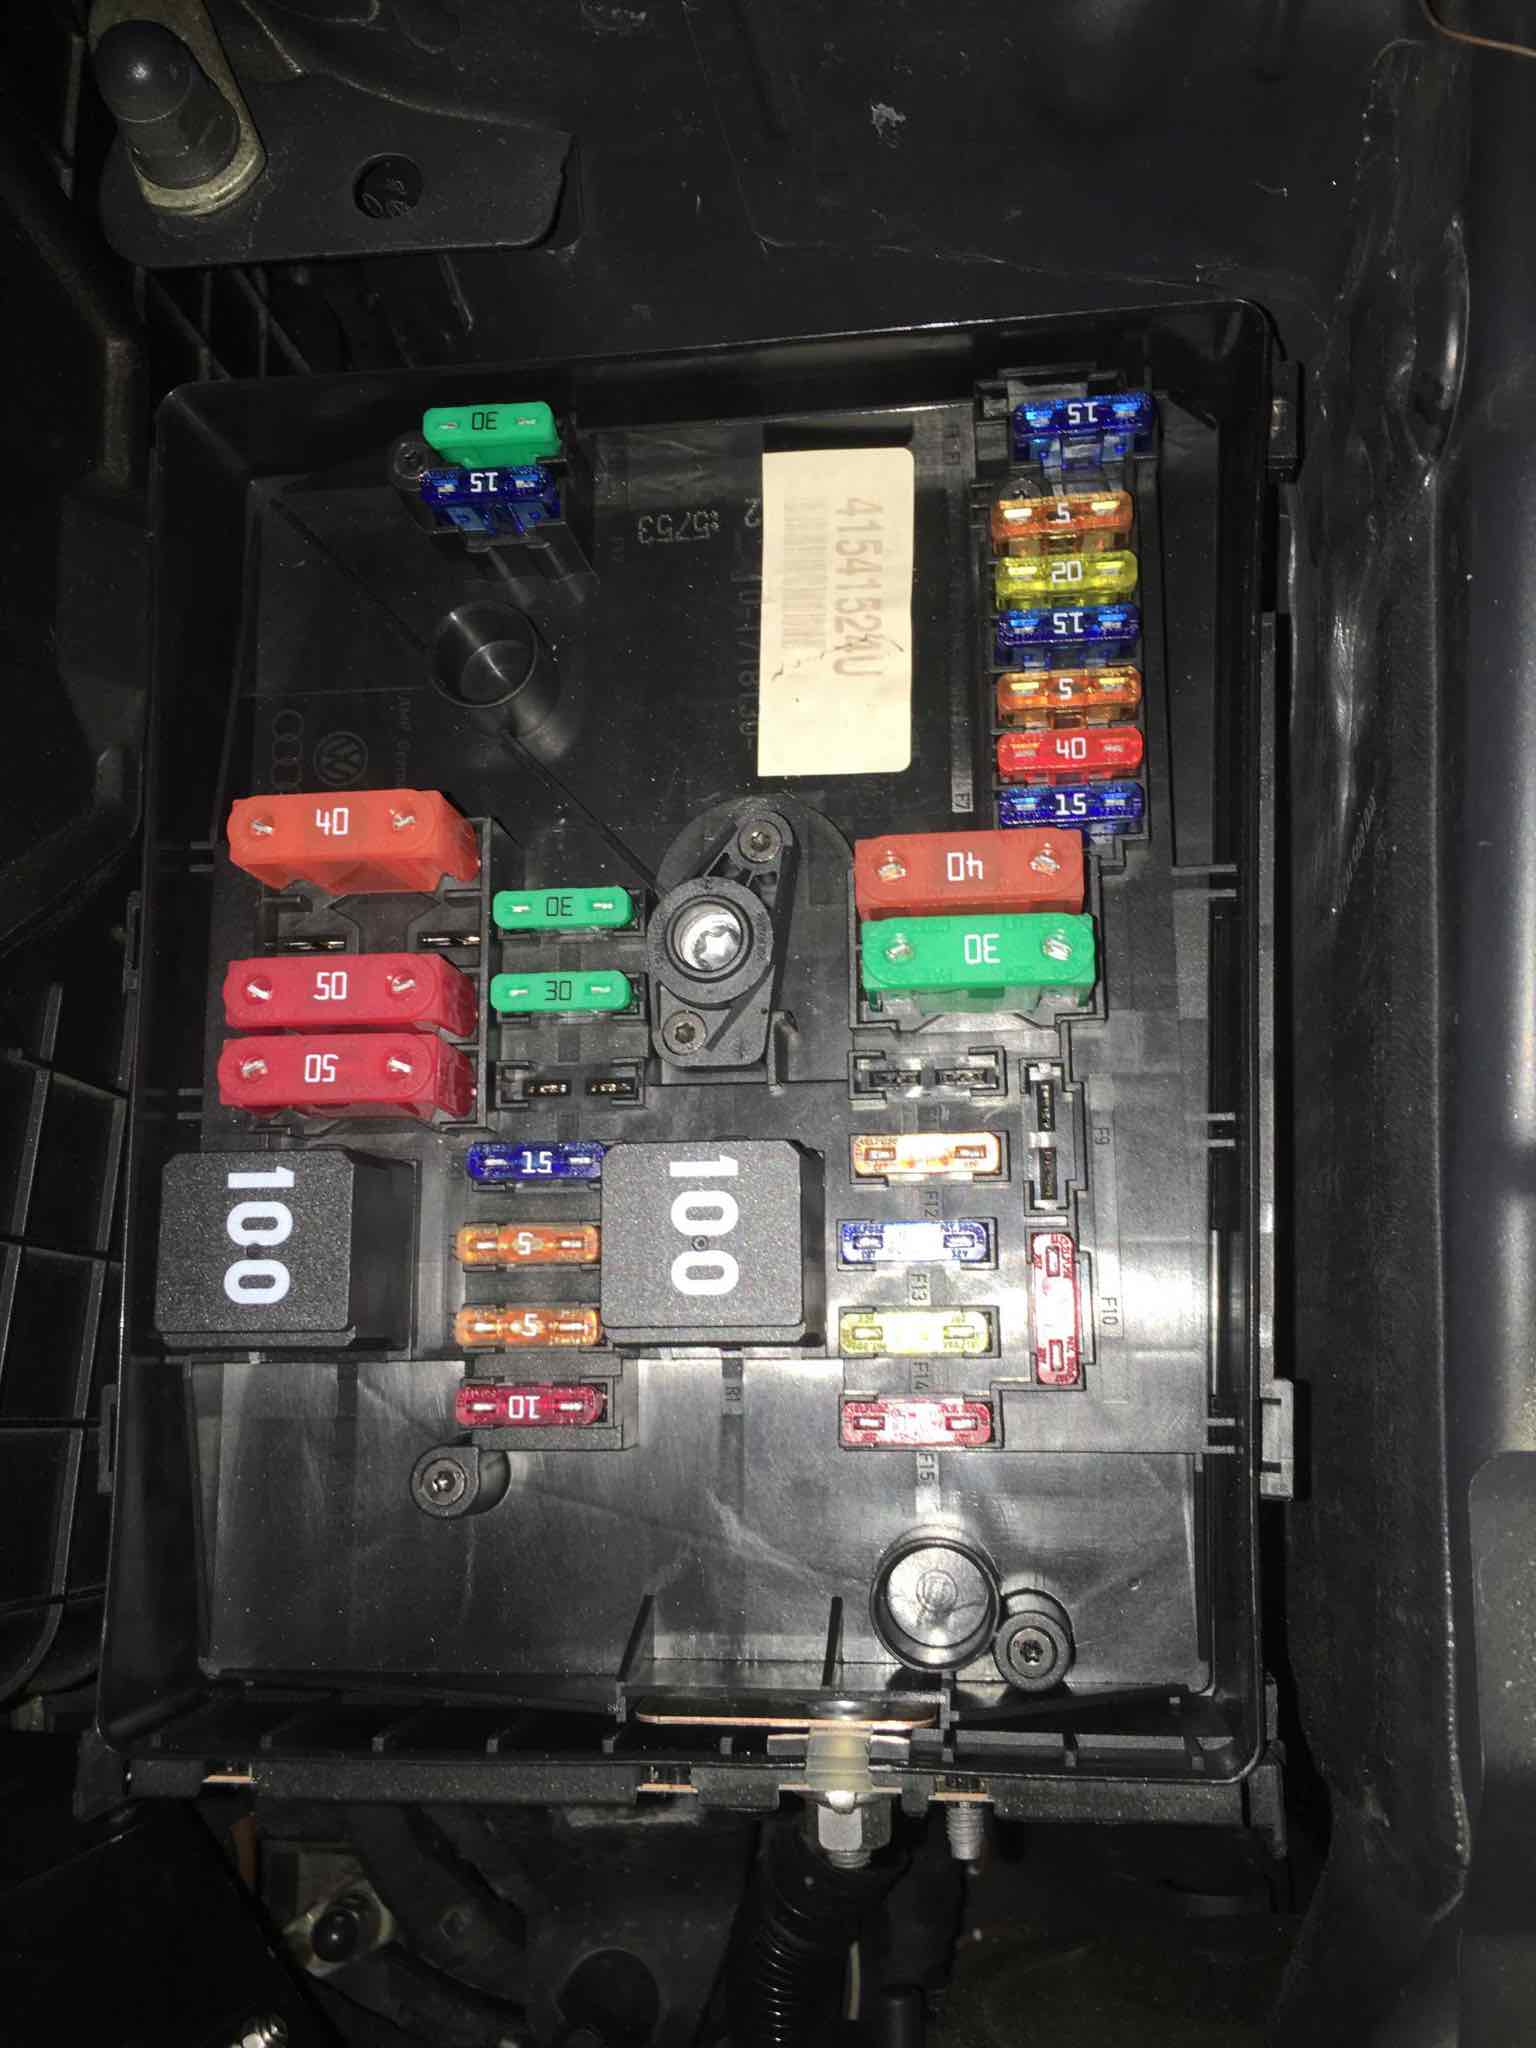 hight resolution of 2012 gti fuse diagram wiring diagram for you 2012 vw polo gti fuse box diagram 2012 volkswagen gti fuse box